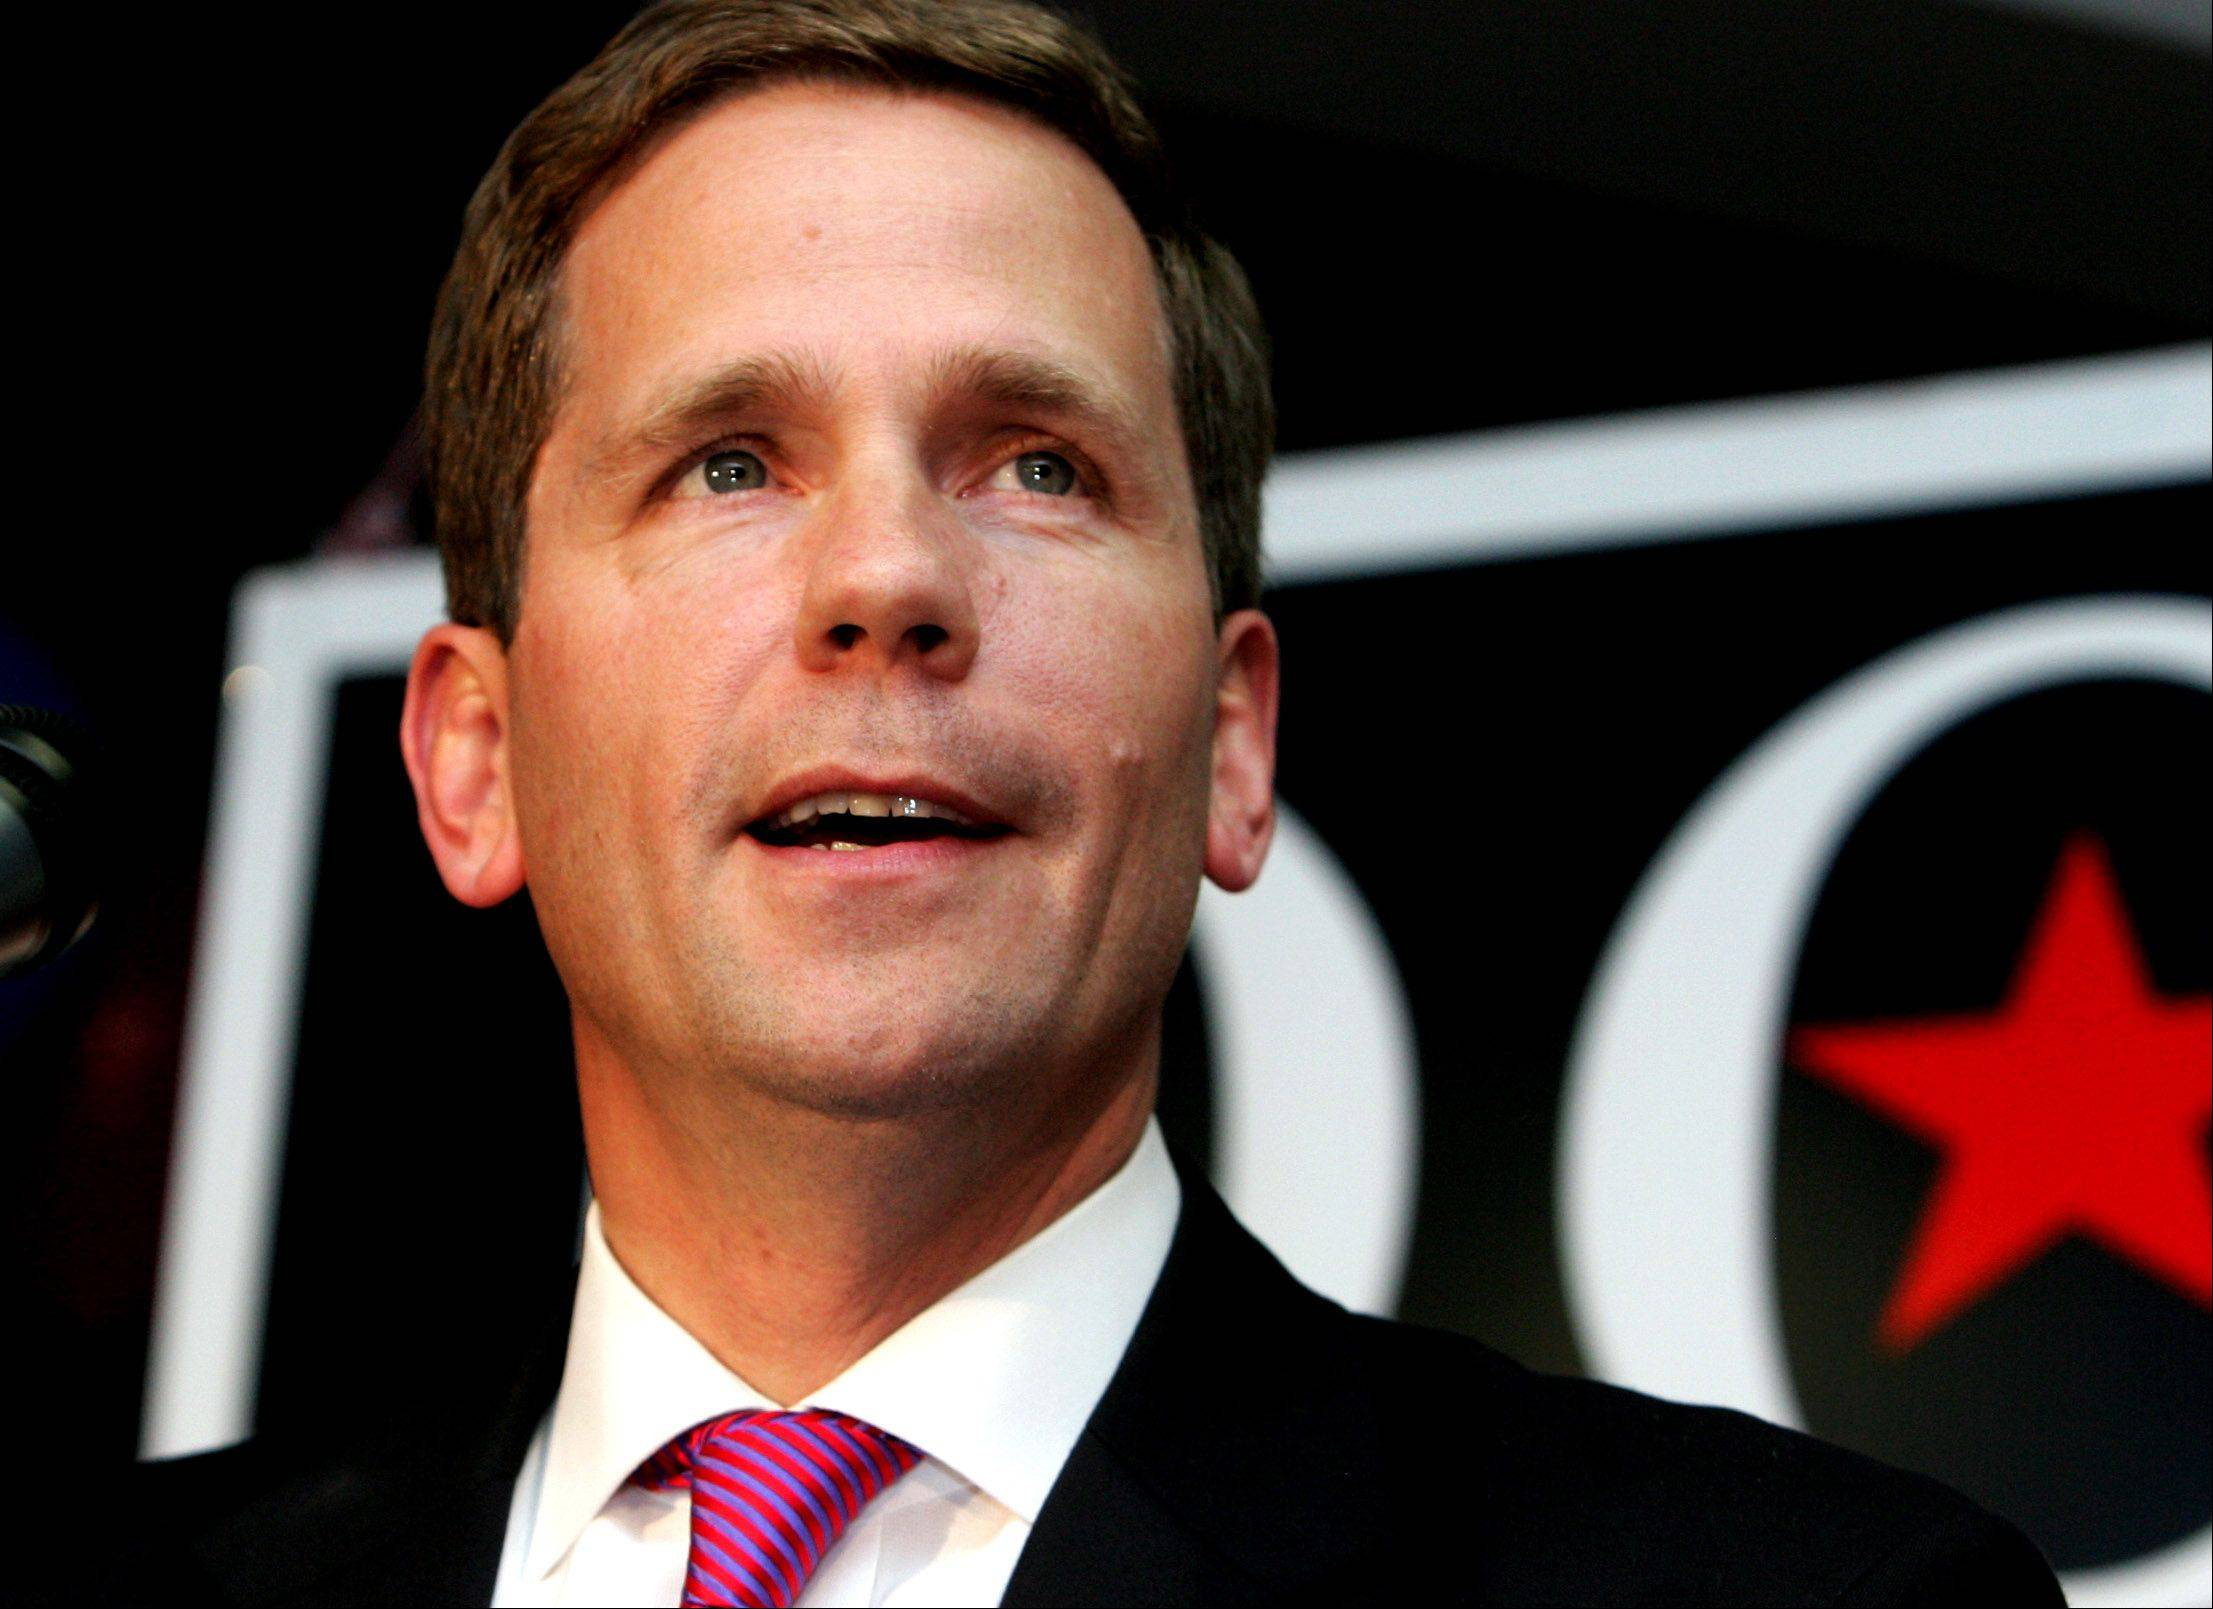 Republican Robert Dold